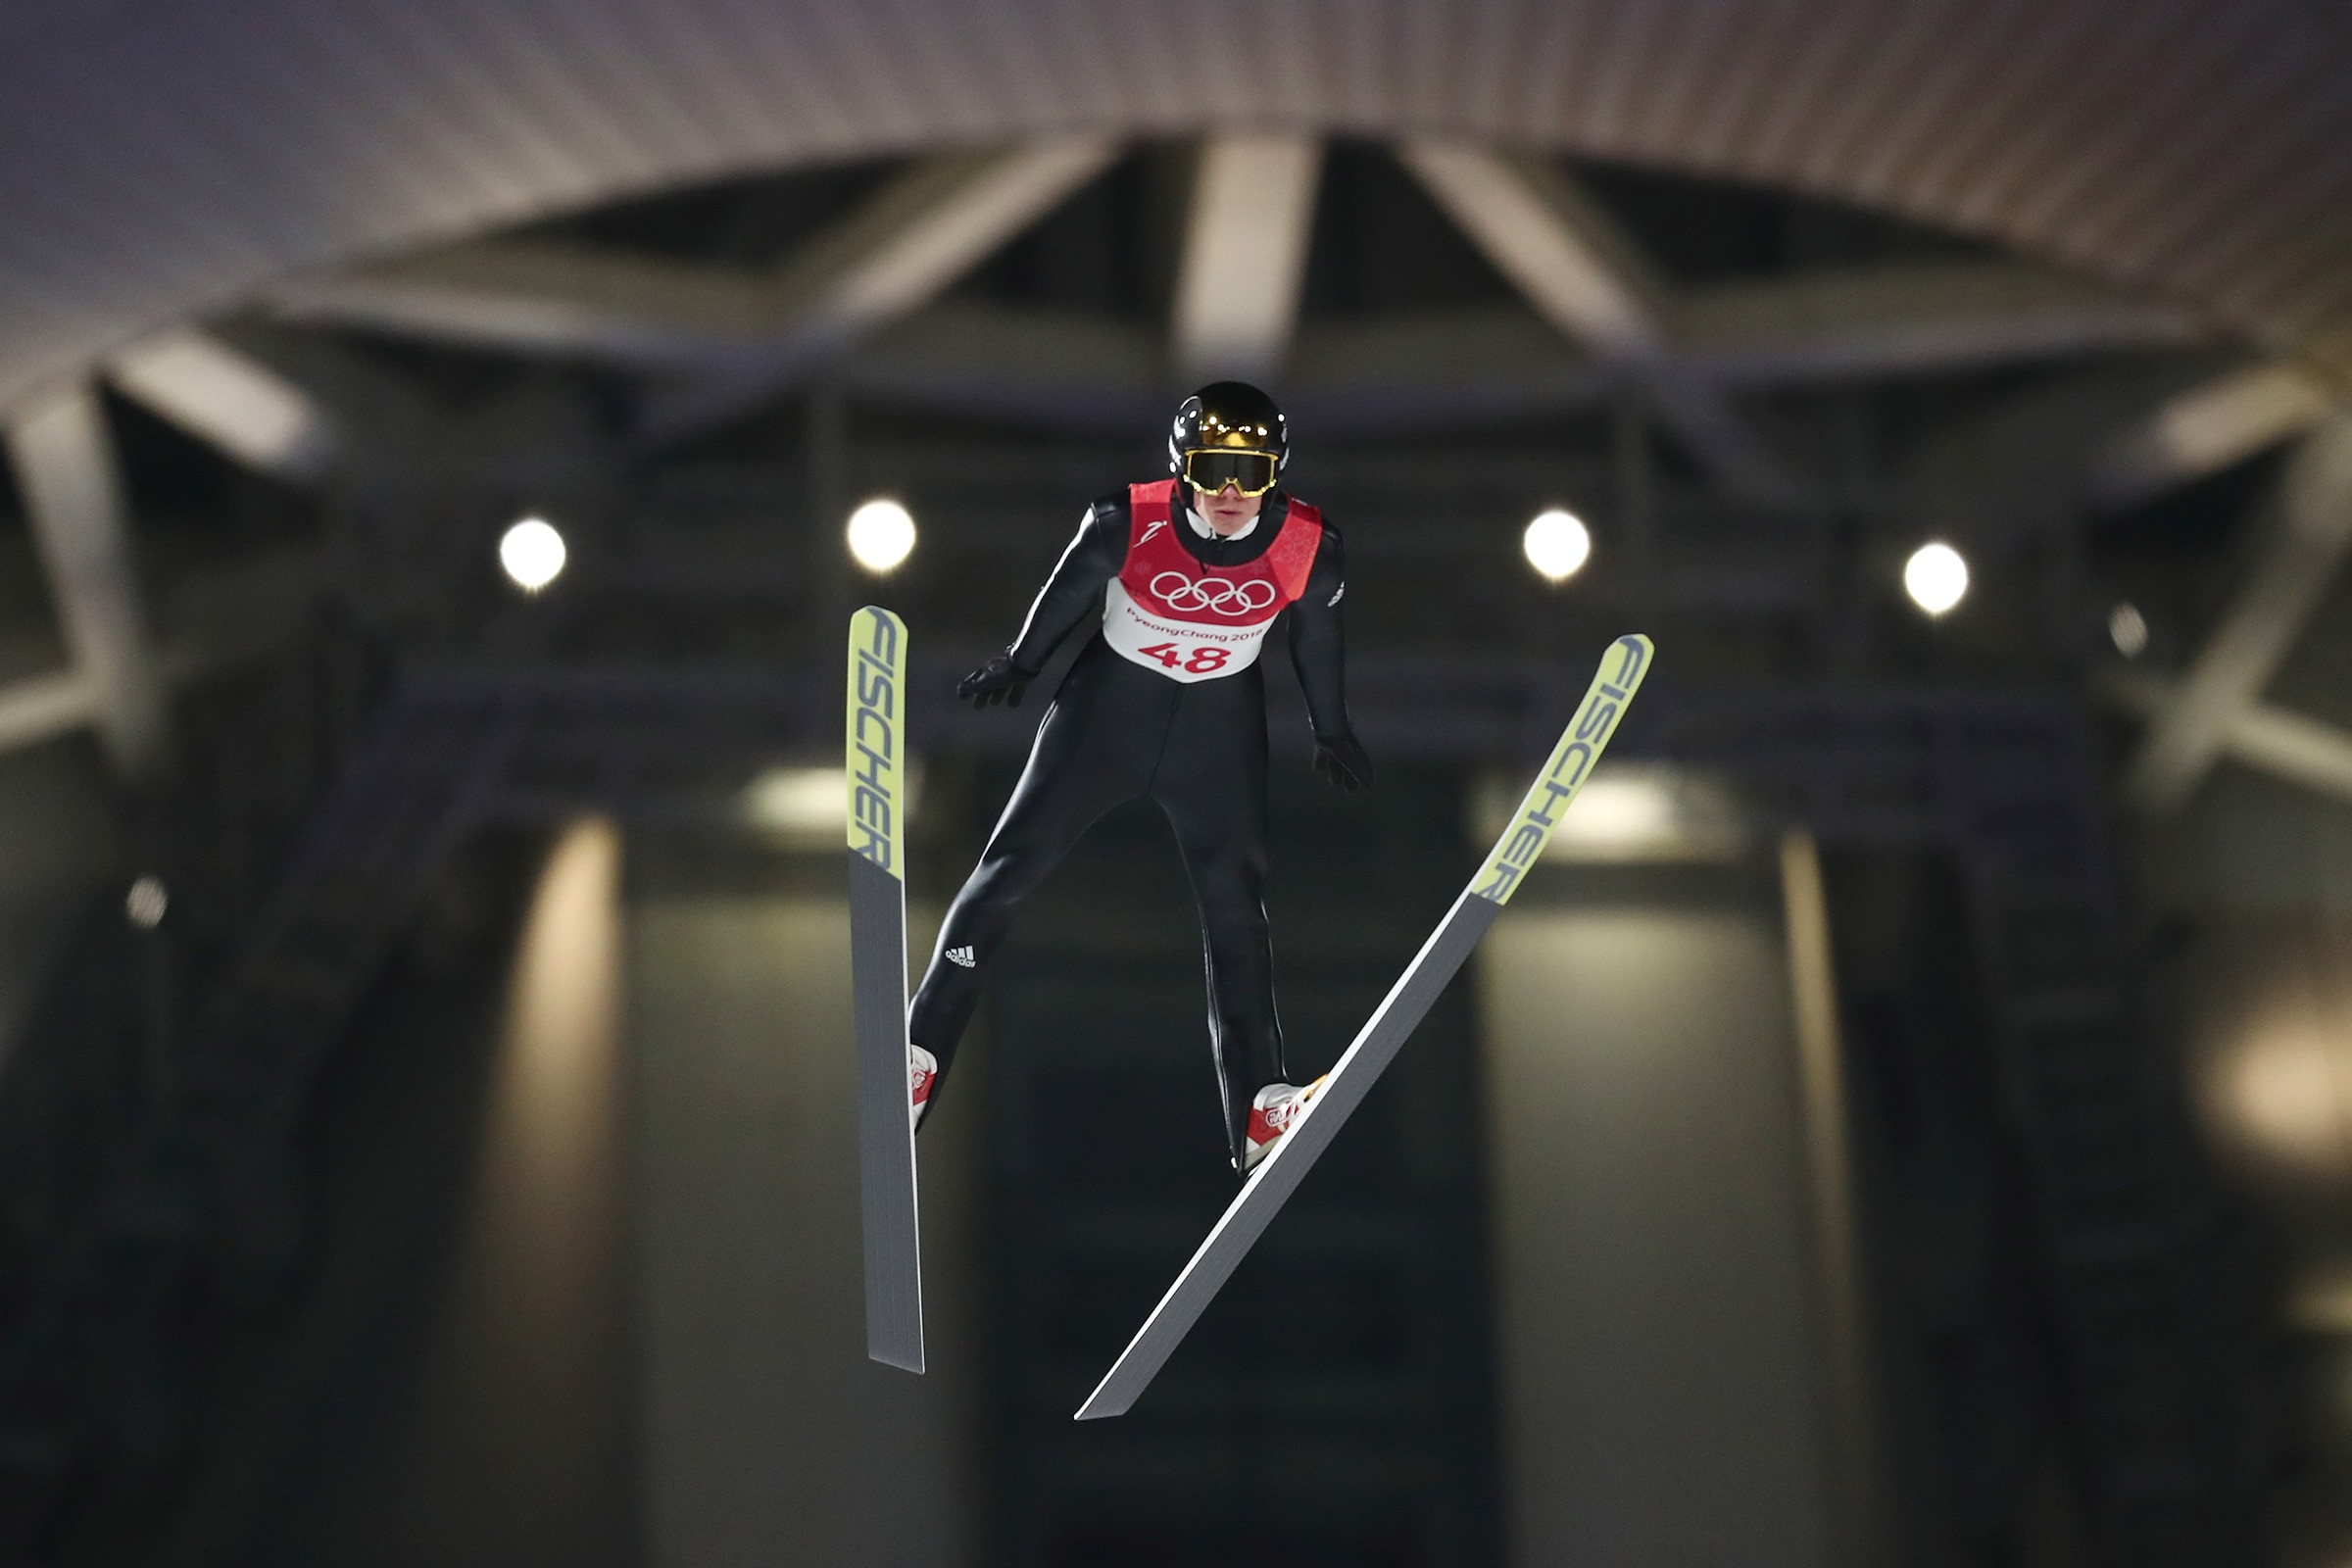 Ski Jumping - Men's Normal Hill Individual